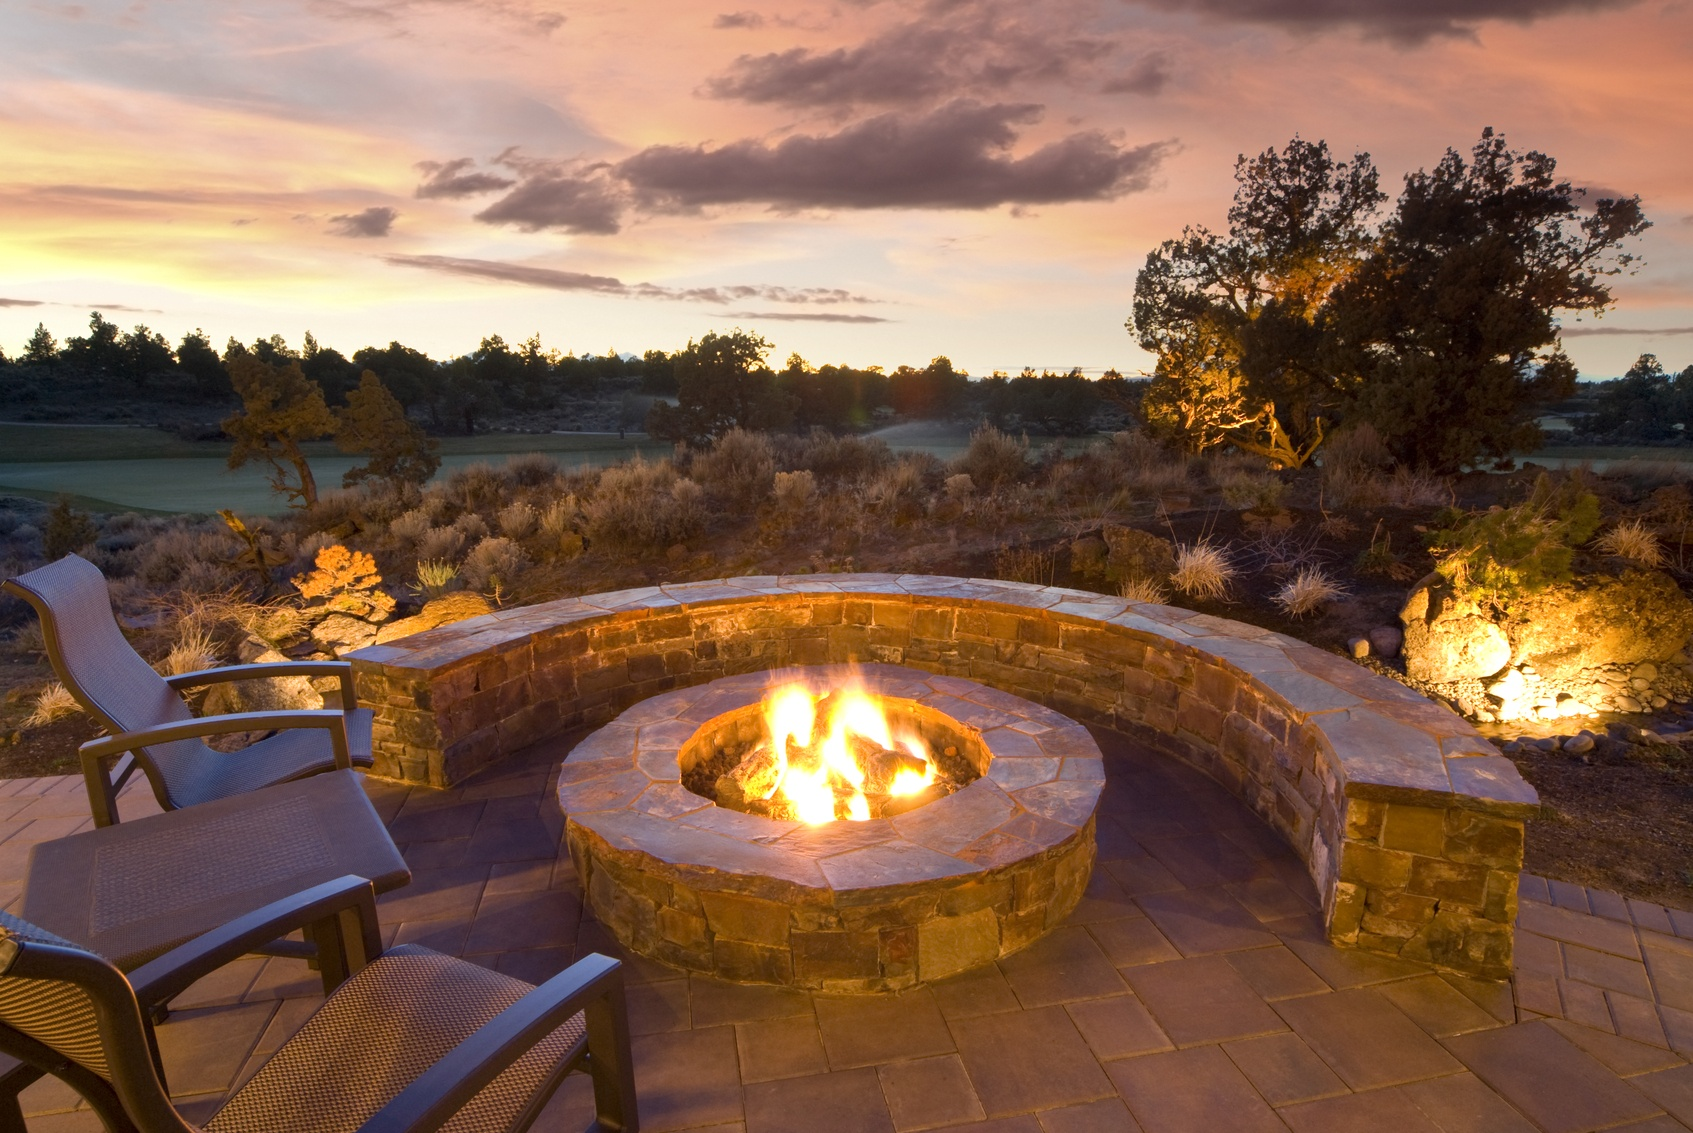 Top stone wholesalers inRockland County, NY